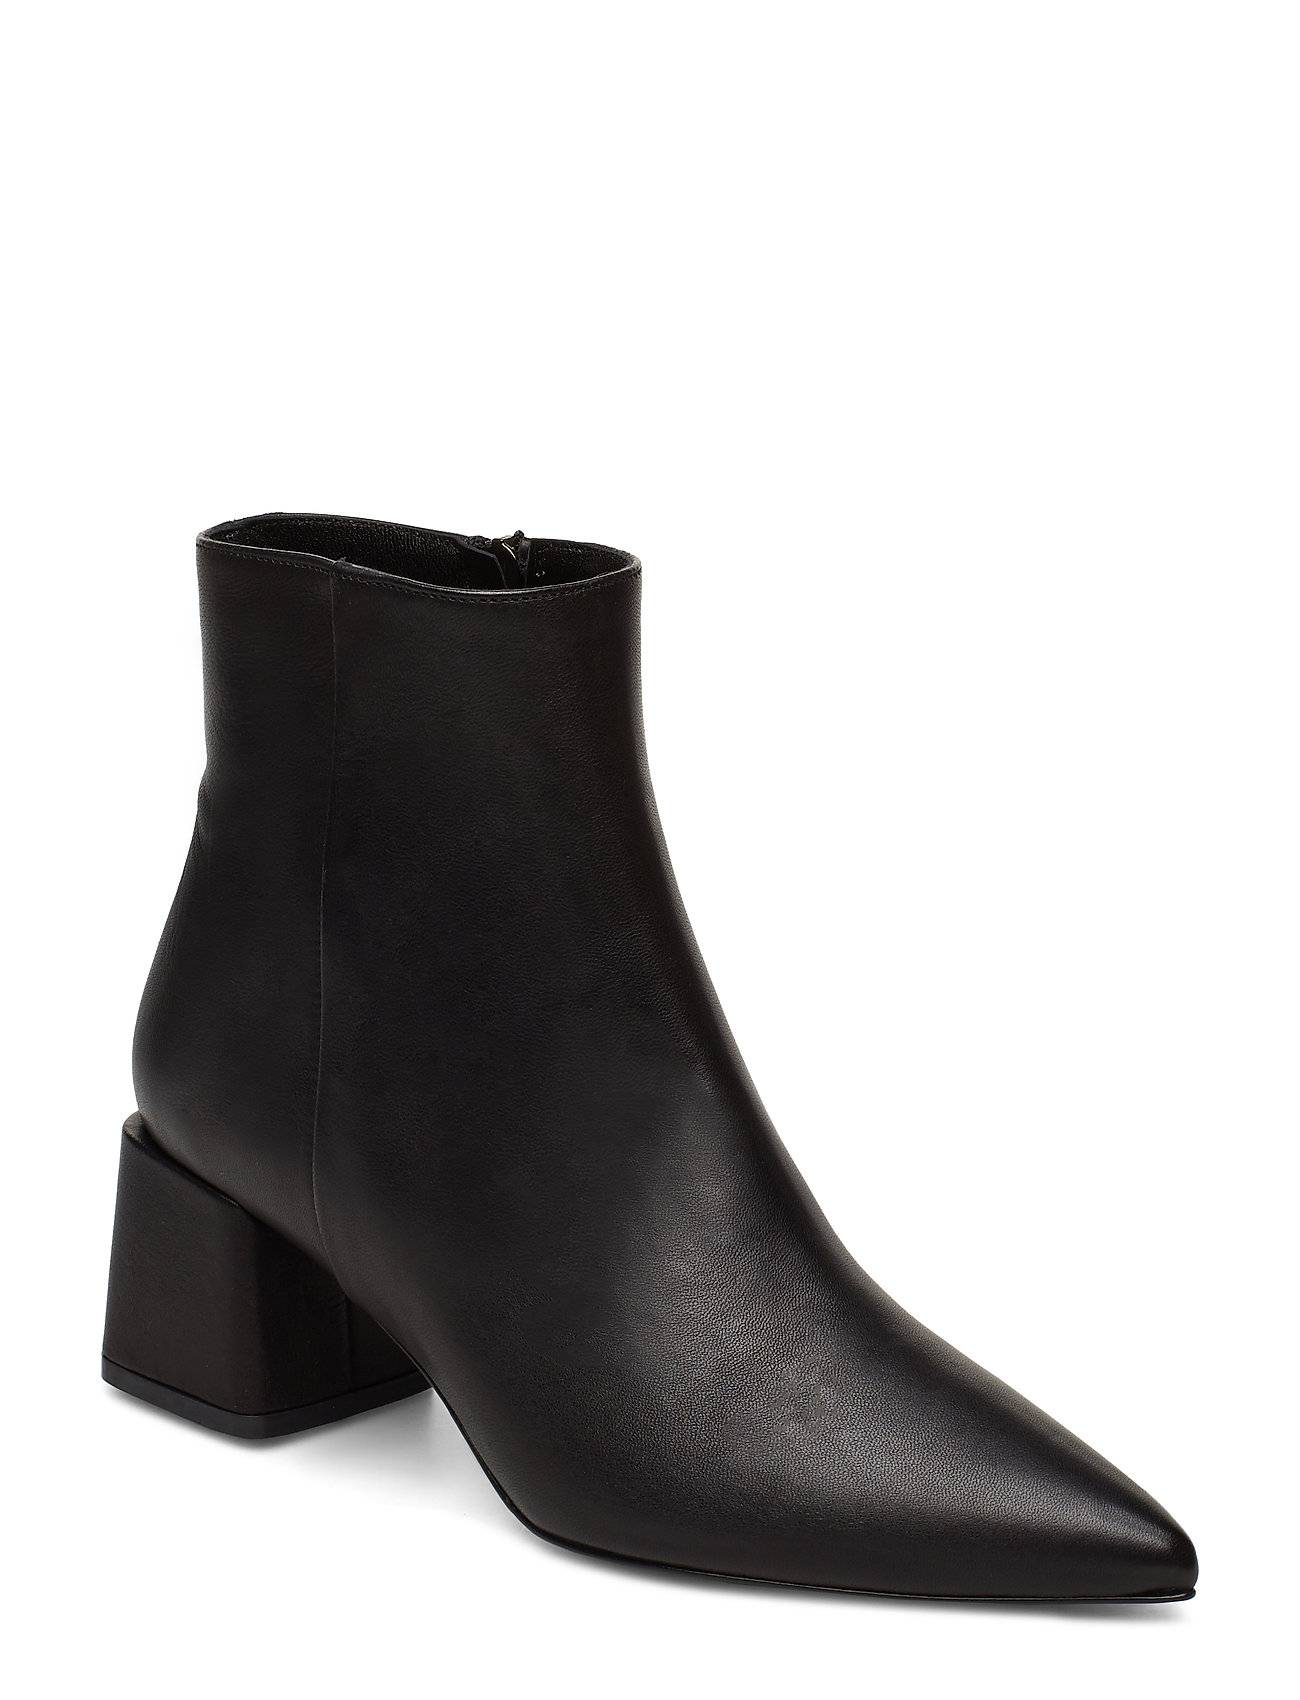 Apair Pointed Bootie Shoes Boots Ankle Boots Ankle Boots With Heel Musta Apair